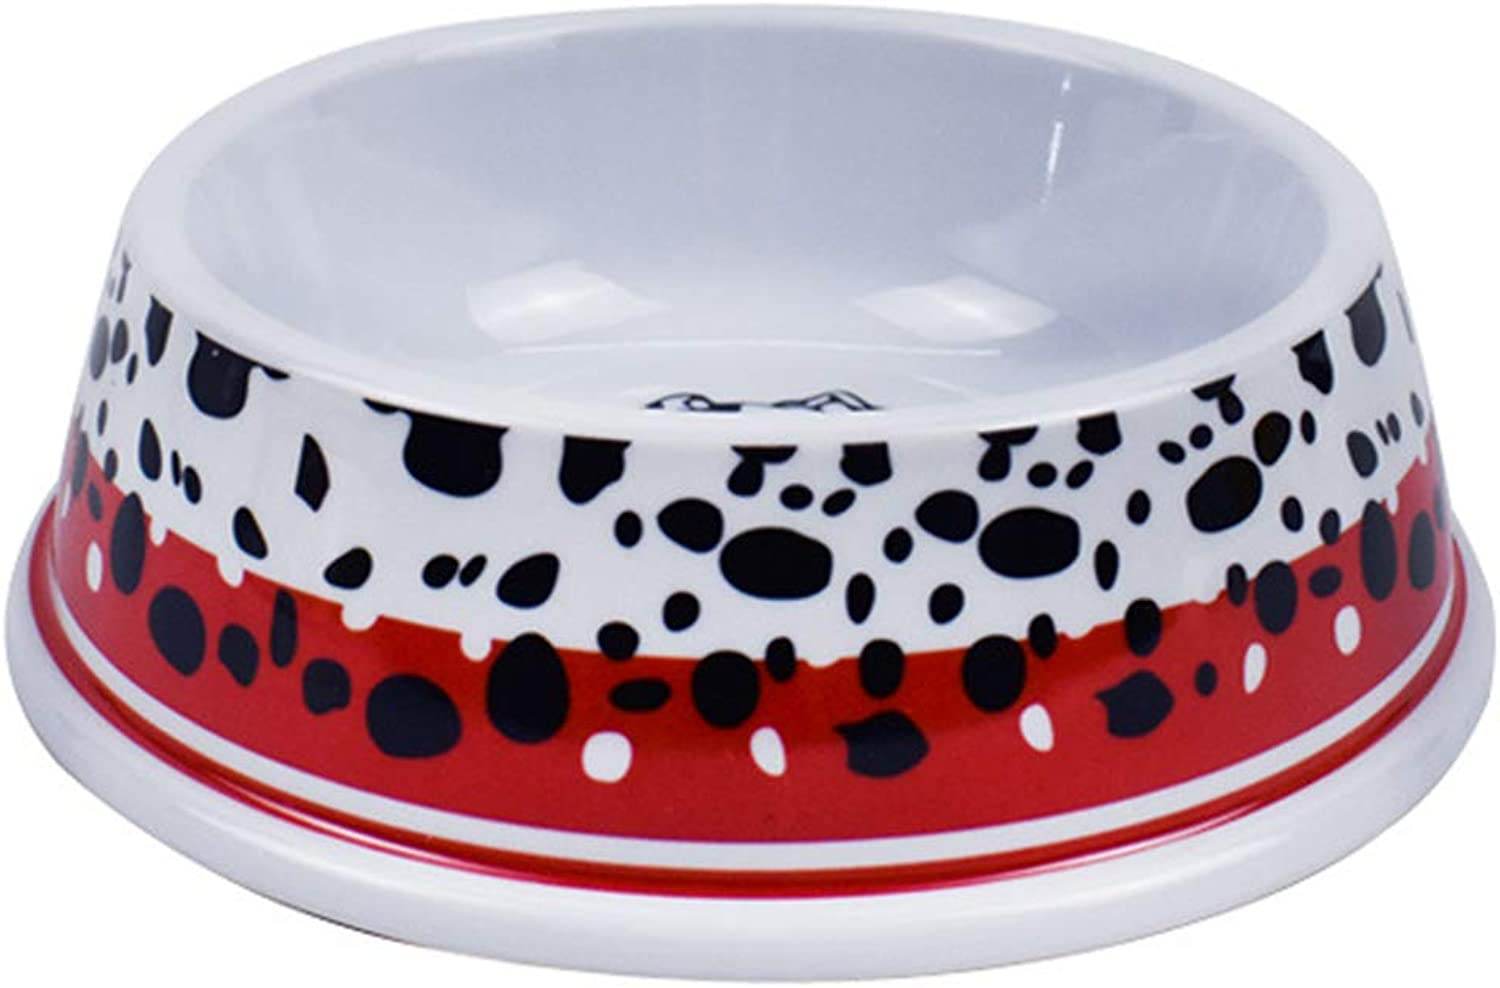 Dog Bowl Print Flower Pet Supplies Cat Dog Feeder Pet Bowl Dog Food Bowl Light Weight Go Out Household color,Red,S